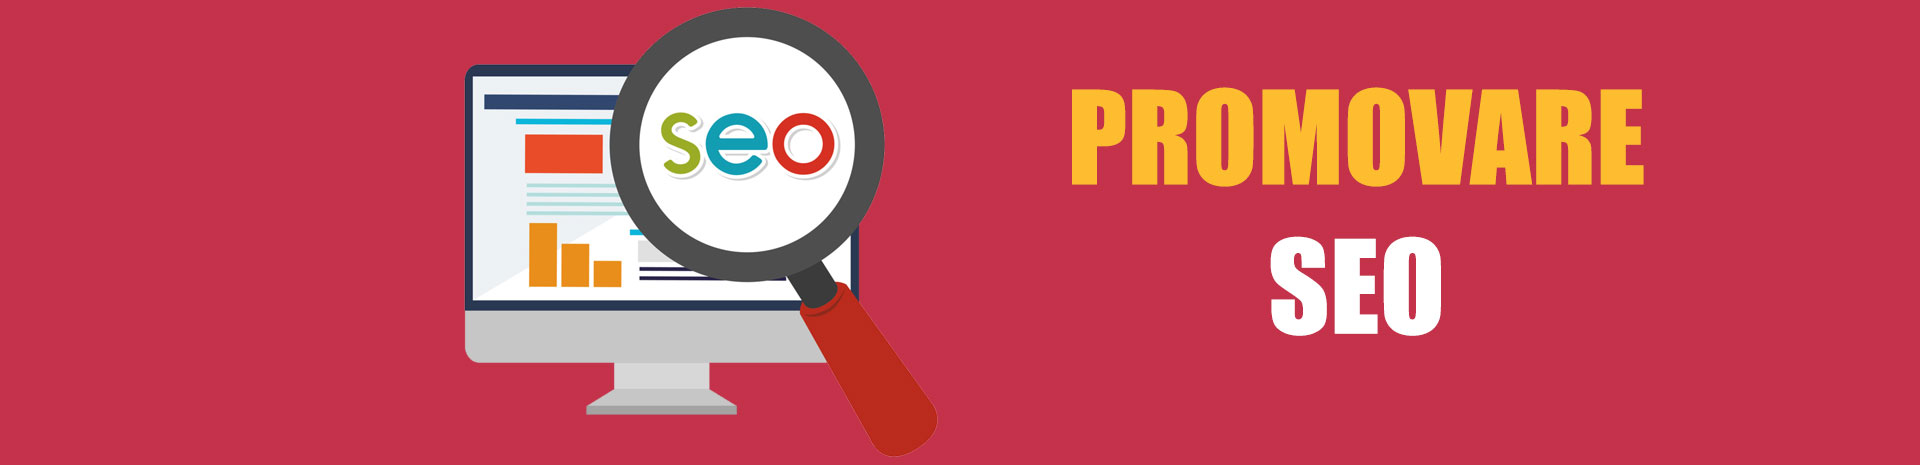 promovare website online seo